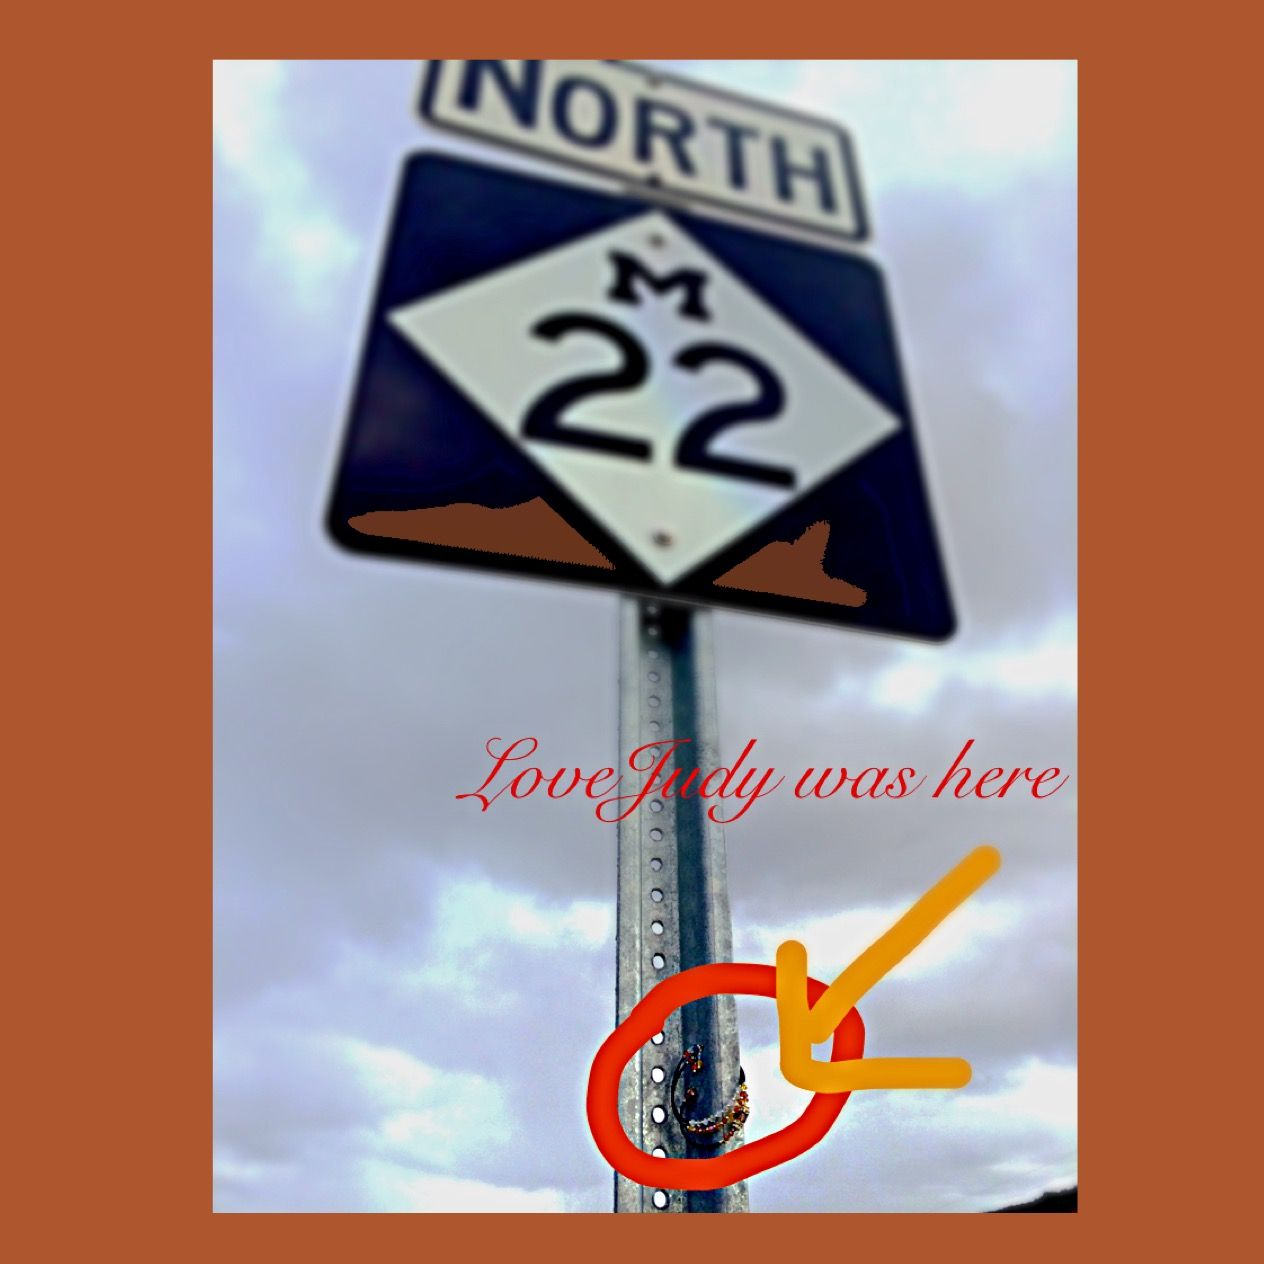 Love Judy Designs sighted on M22 sign near Traverse City, Michigan